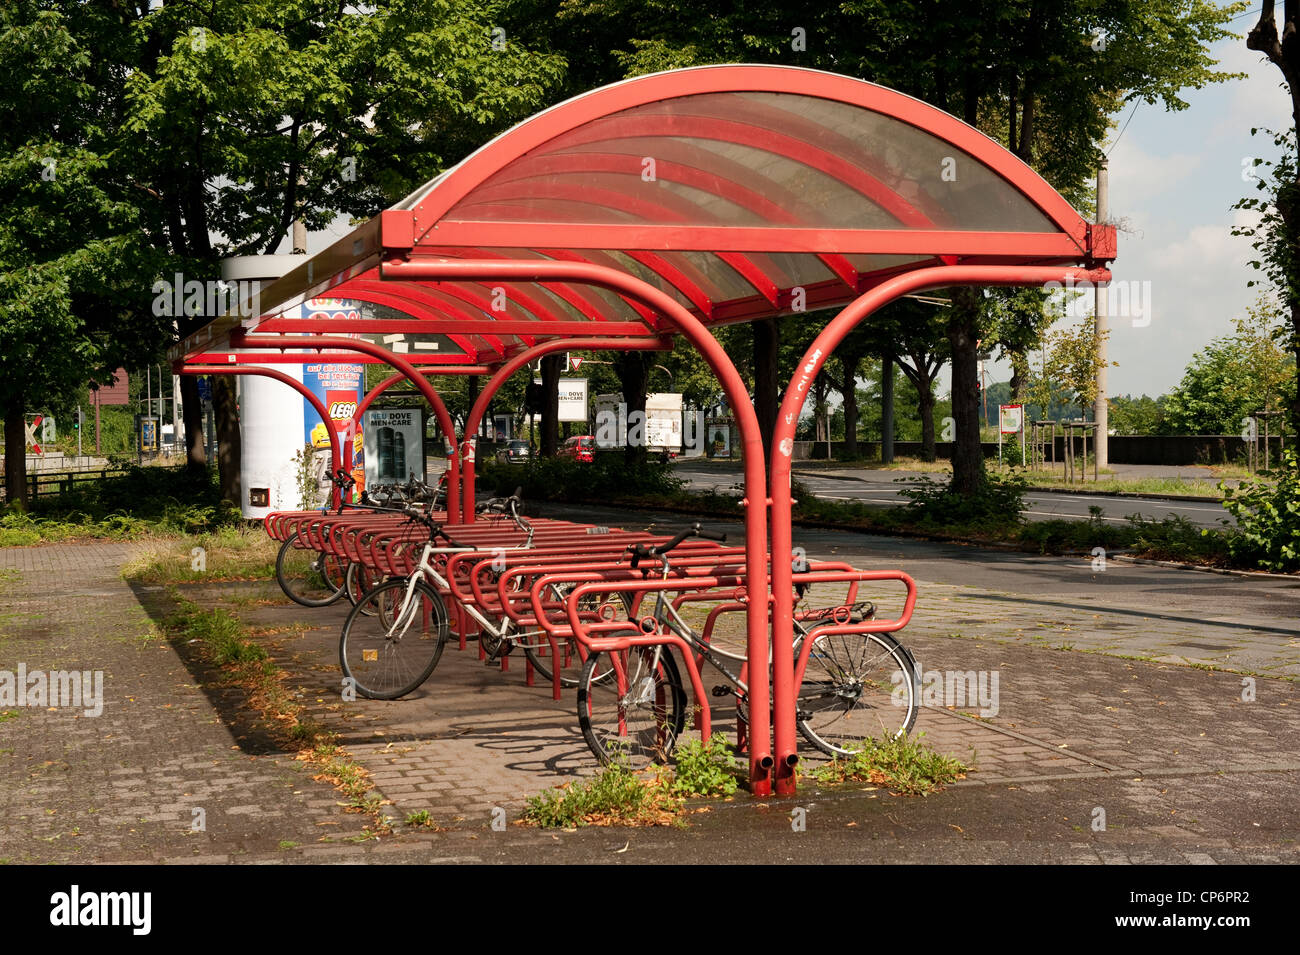 Commuter Bicycle Rack Storage Tram Station Cologne Germany Europe EU